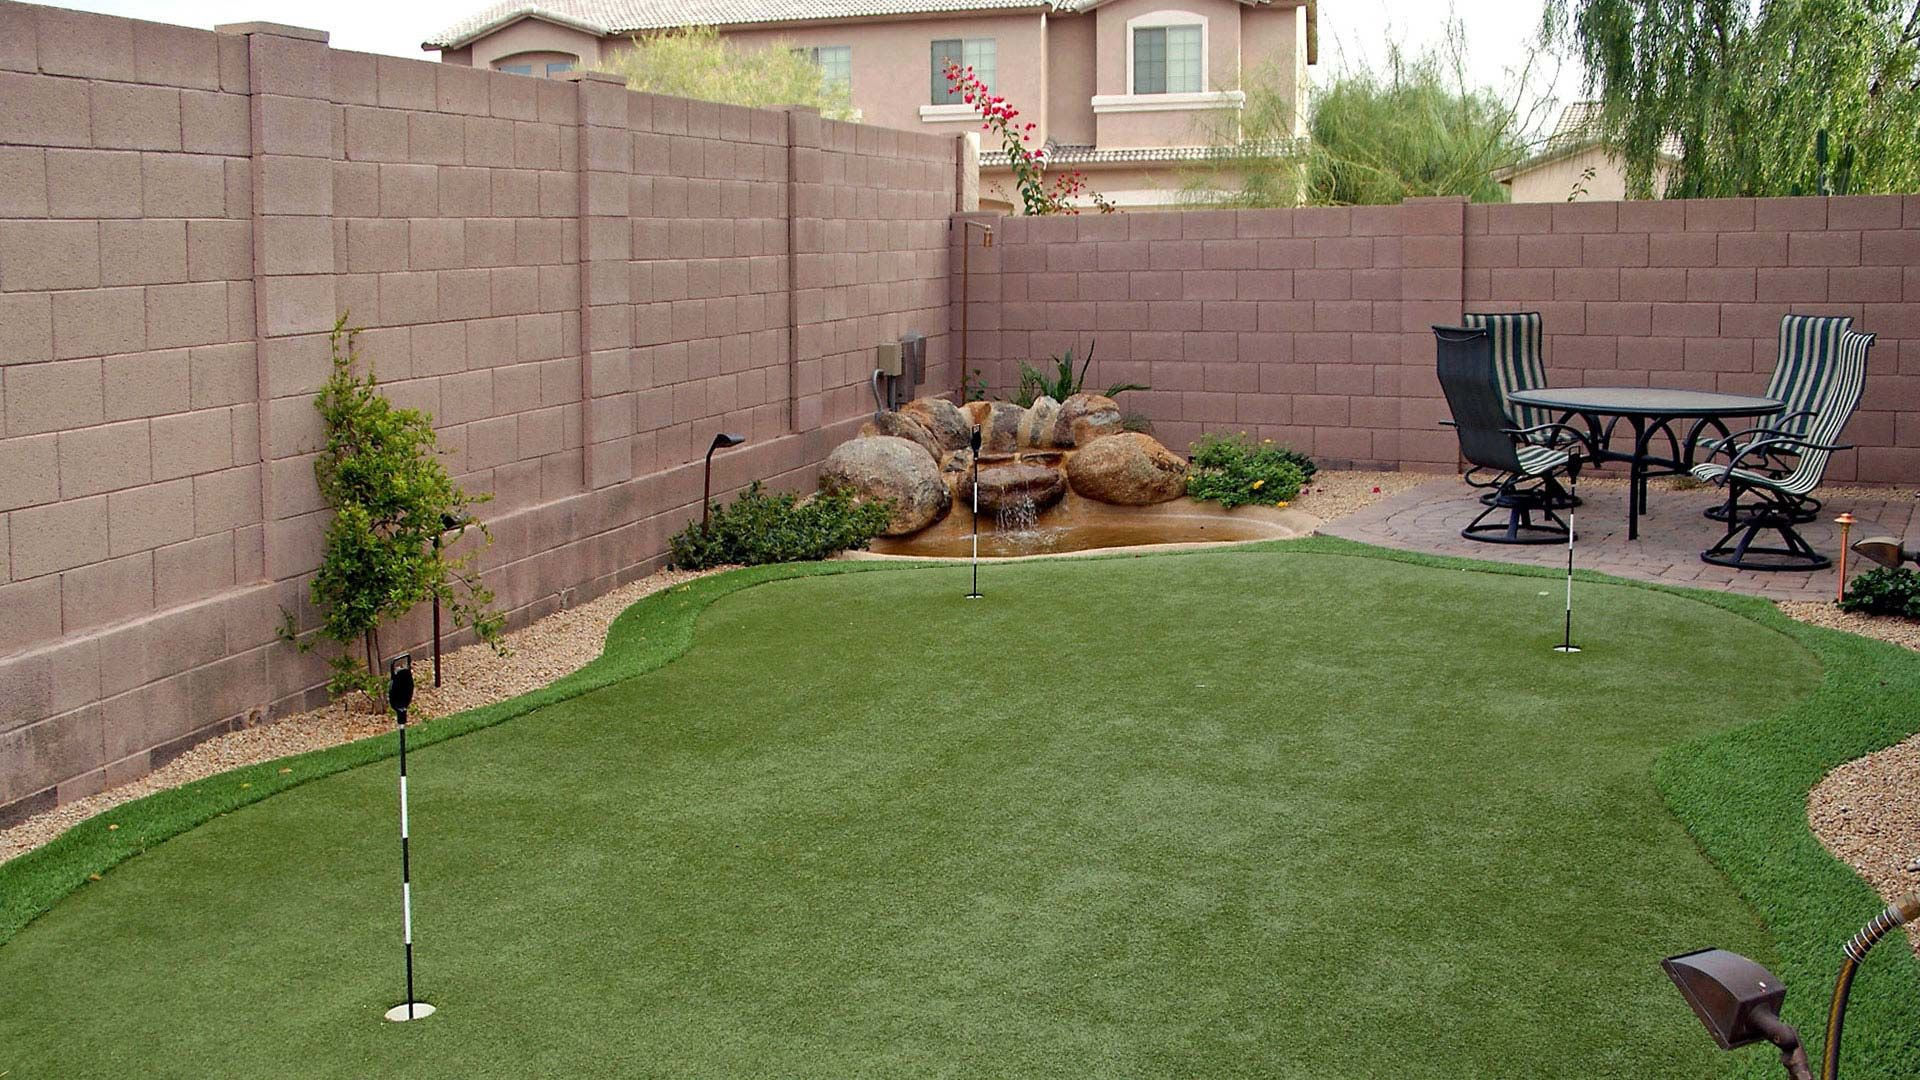 Custom Putting Greens for Your Backyard Using Artificial